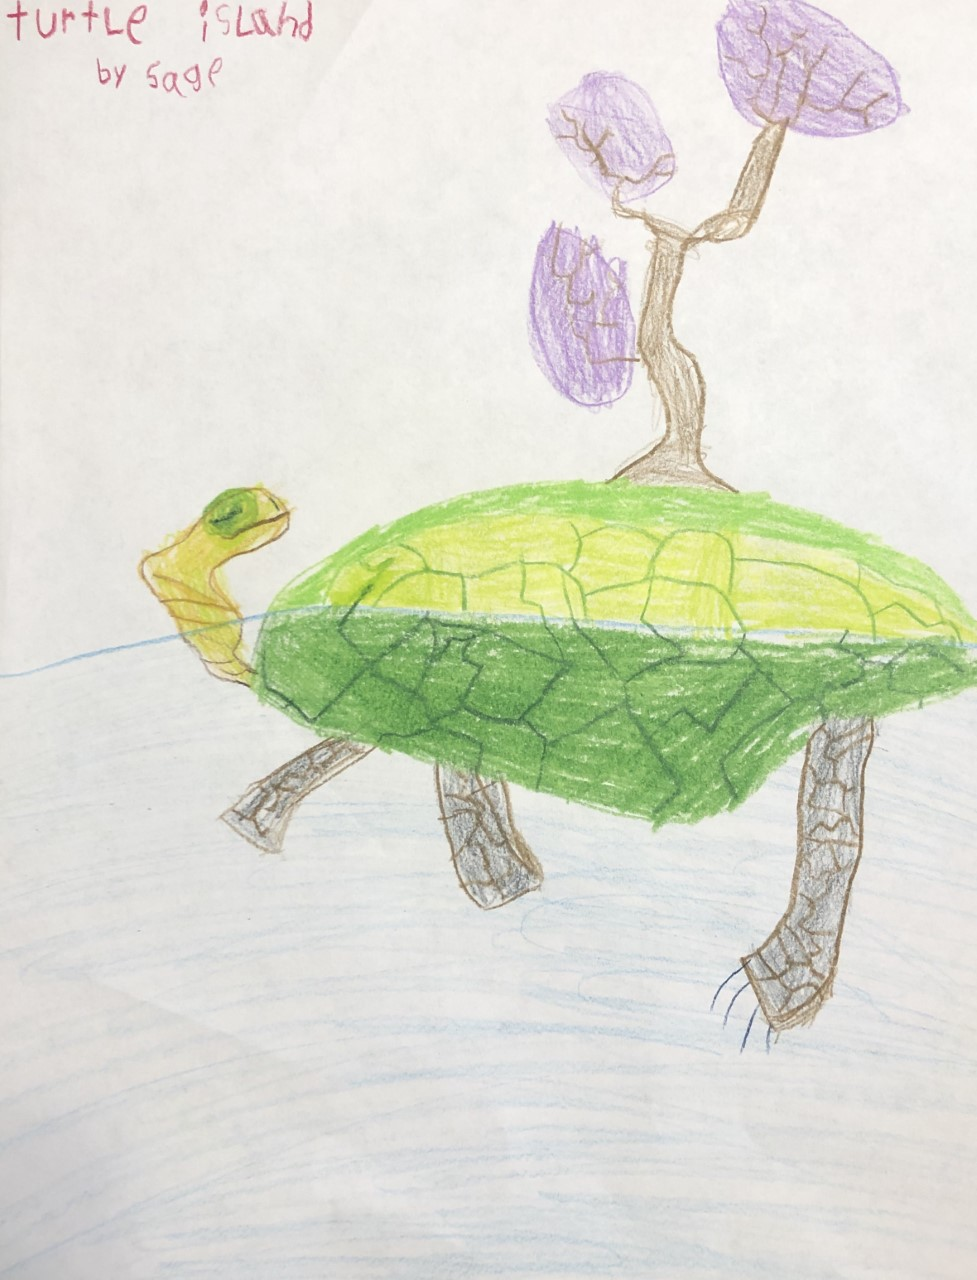 Turtle island by Sage. A hand sketched illustration of a swimming green turtle with a tree on its back. The tree has purple leaves.